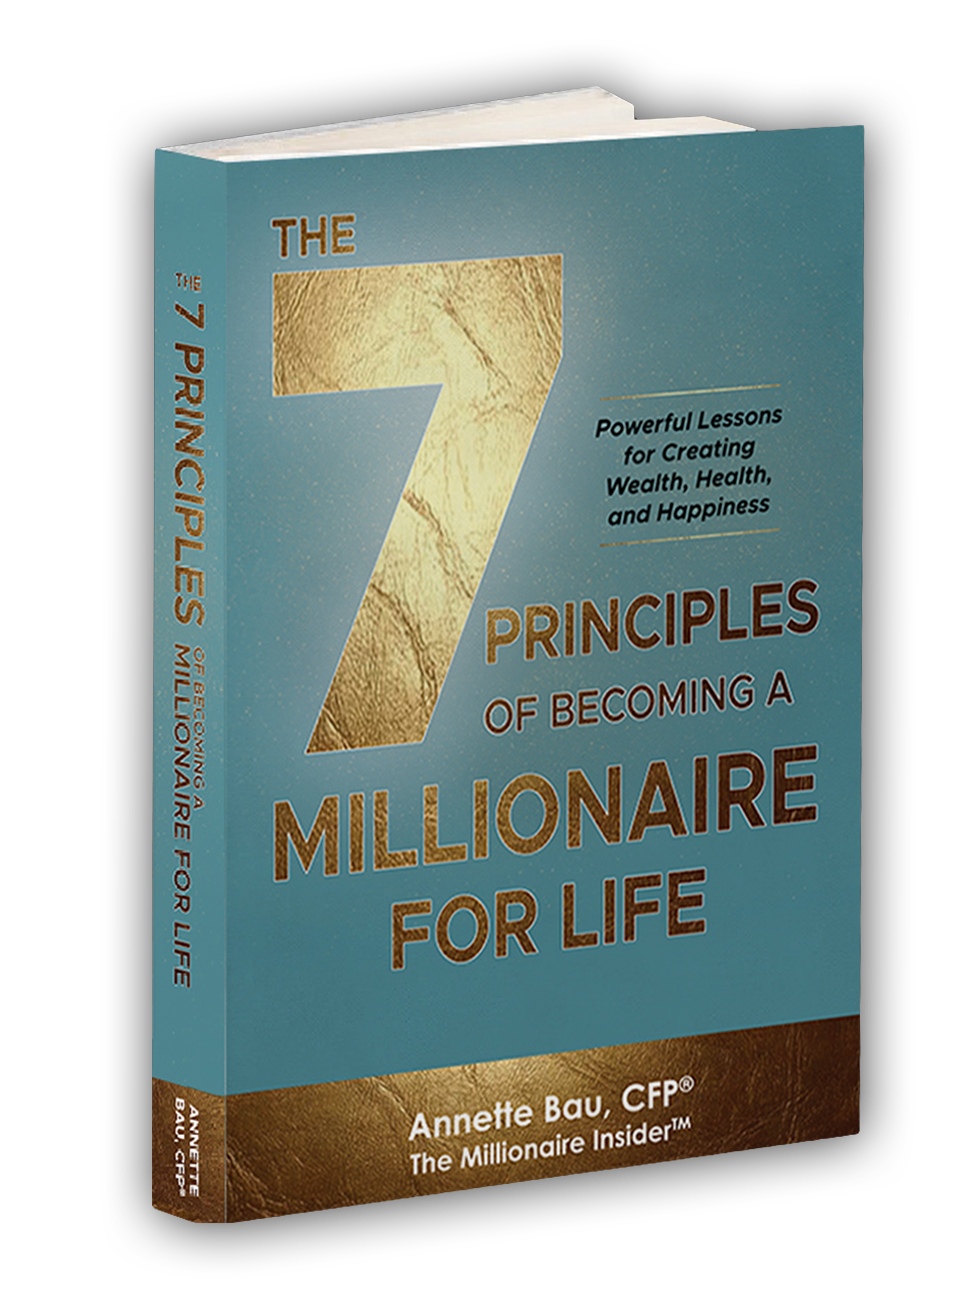 7 Principles of Becoming a Millionaire for Life